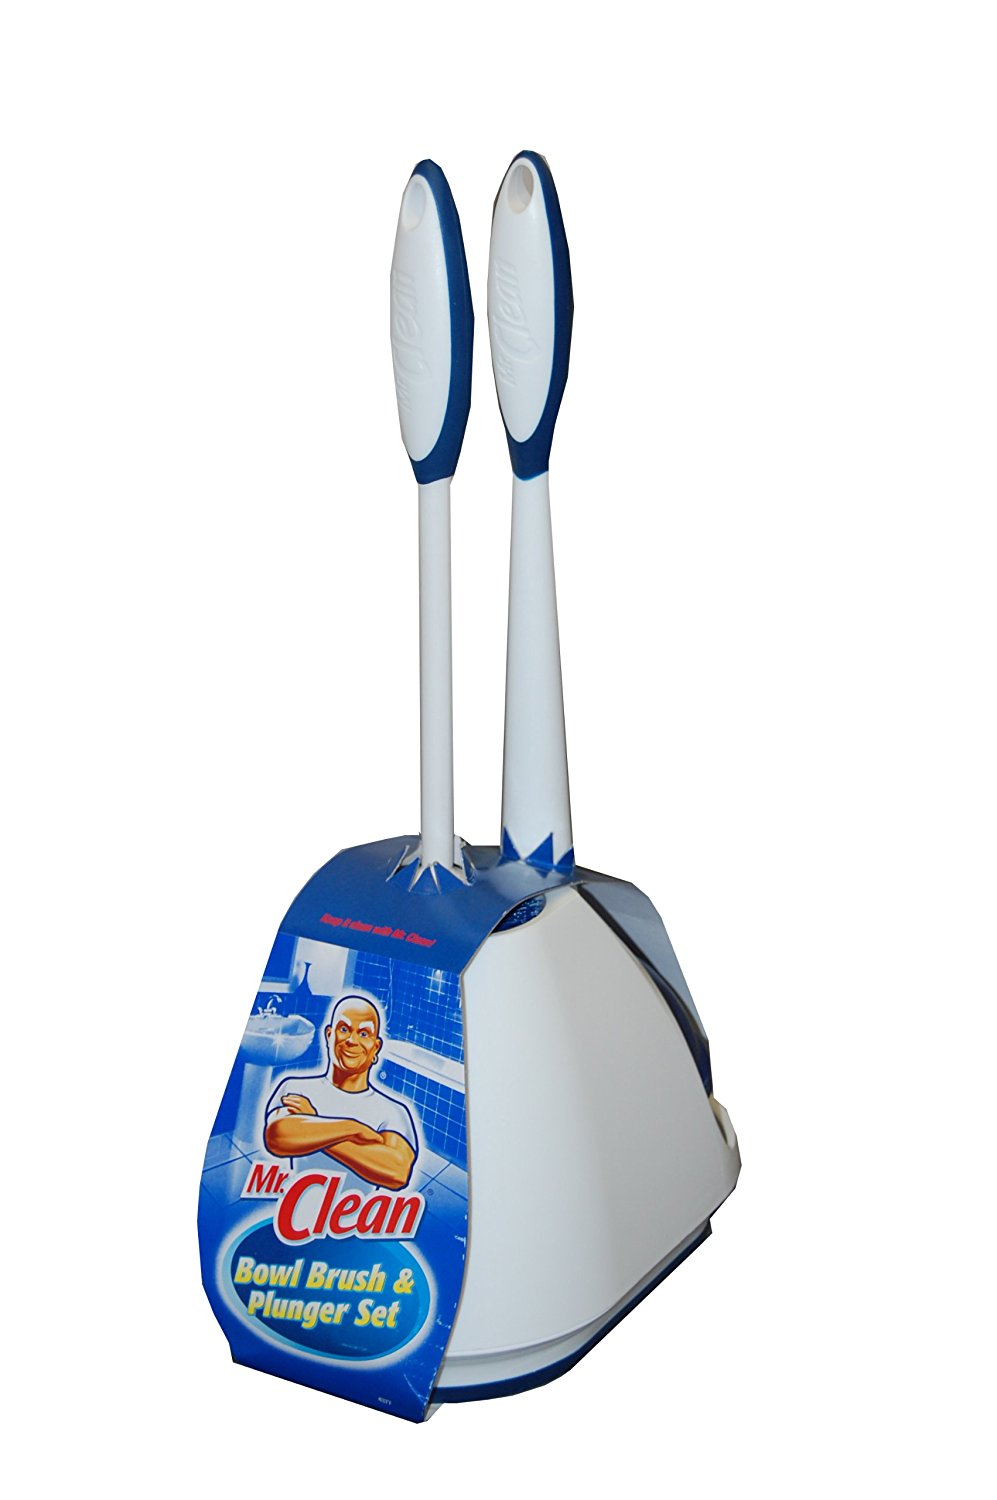 Mr. Clean Bowl Brush & Plunger Set